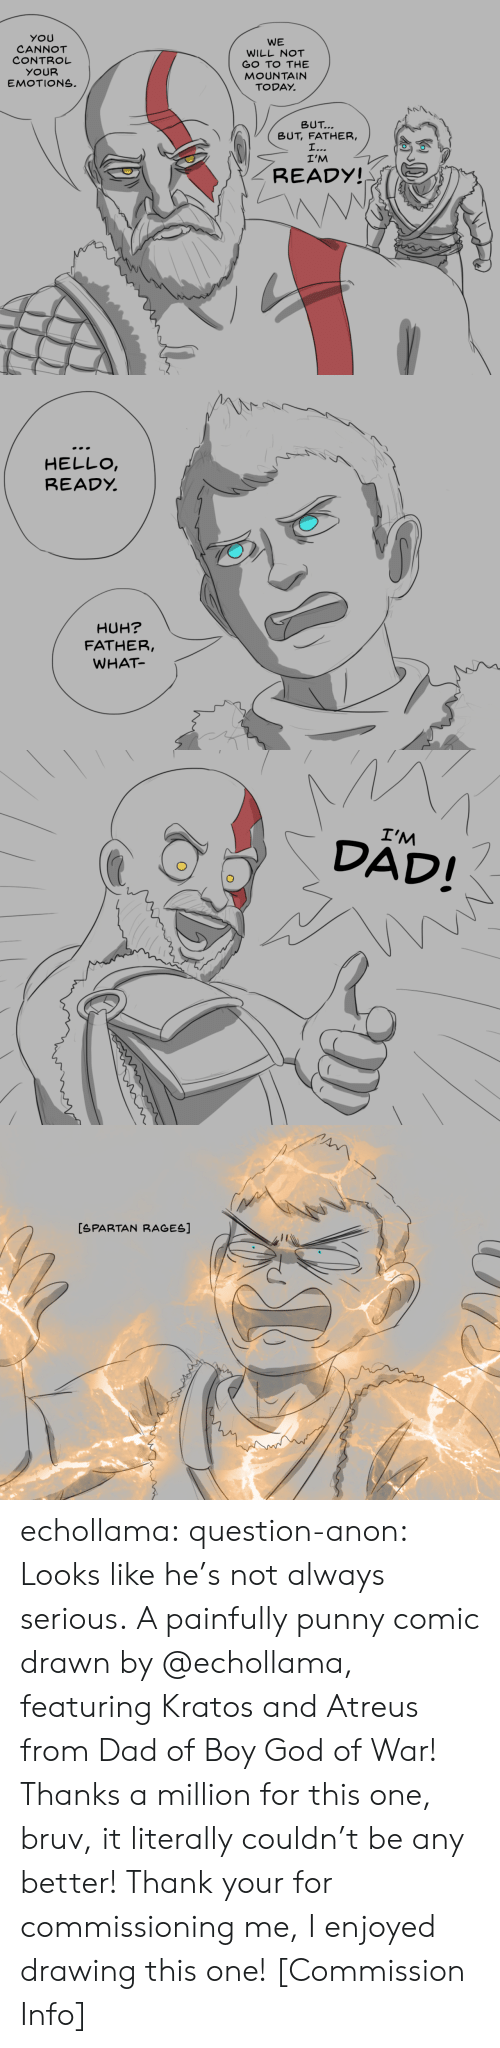 the mountain: YOU  CANNOT  CONTROL  YOUR  EMOTIONS.  WE  WILL NOT  GO TO THE  MOUNTAIN  TODAY.  トN\  \  BUT  BUT, FATHER,  I'M  READY!   HELLO  READỵ  HUH?  FATHER,  WHAT   I'M  DAD!   [SPARTAN RAGES] echollama:  question-anon:  Looks like he's not always serious. A painfully punny comic drawn by @echollama, featuringKratos and Atreus from Dad of Boy God of War! Thanks a million for this one, bruv, it literally couldn't be any better!  Thank your for commissioning me, I enjoyed drawing this one!    [Commission Info]